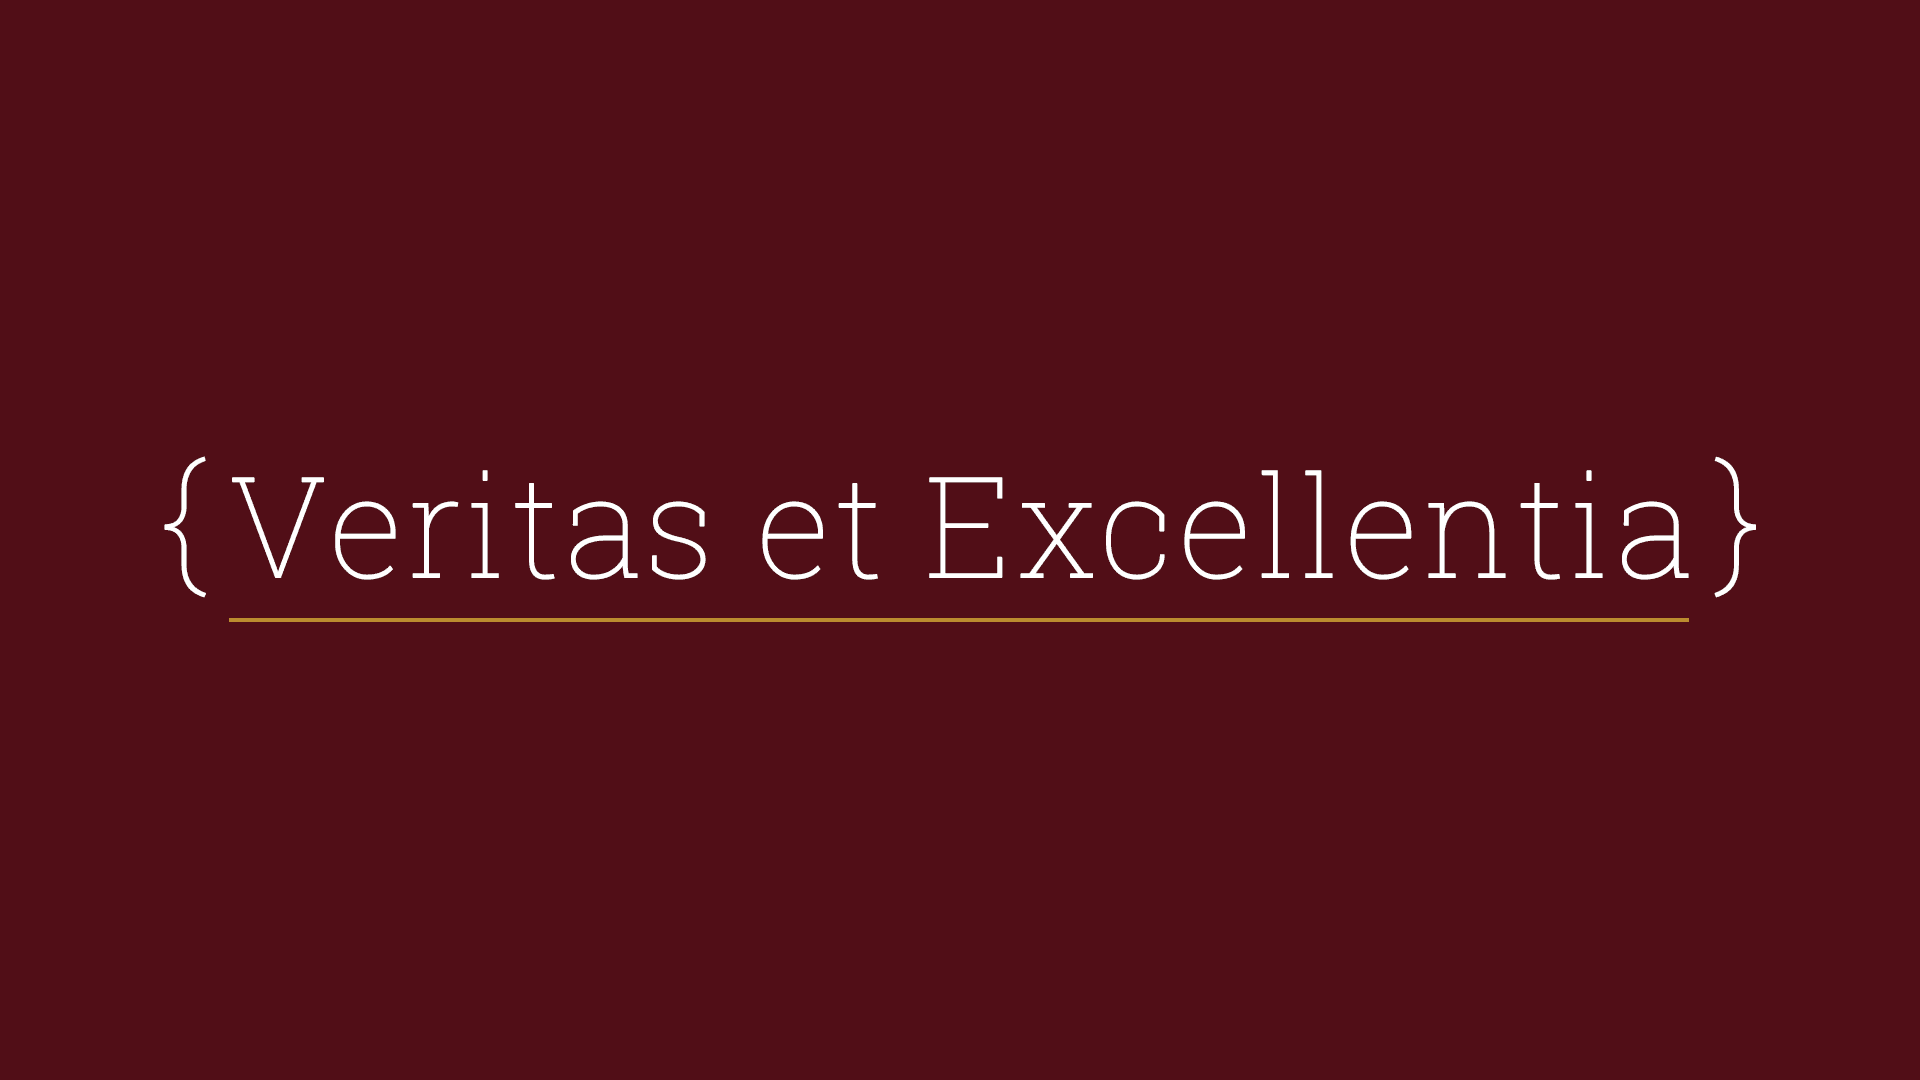 """Veritas et excellentia"" is Latin for ""truth and excellence"" and are my core values."